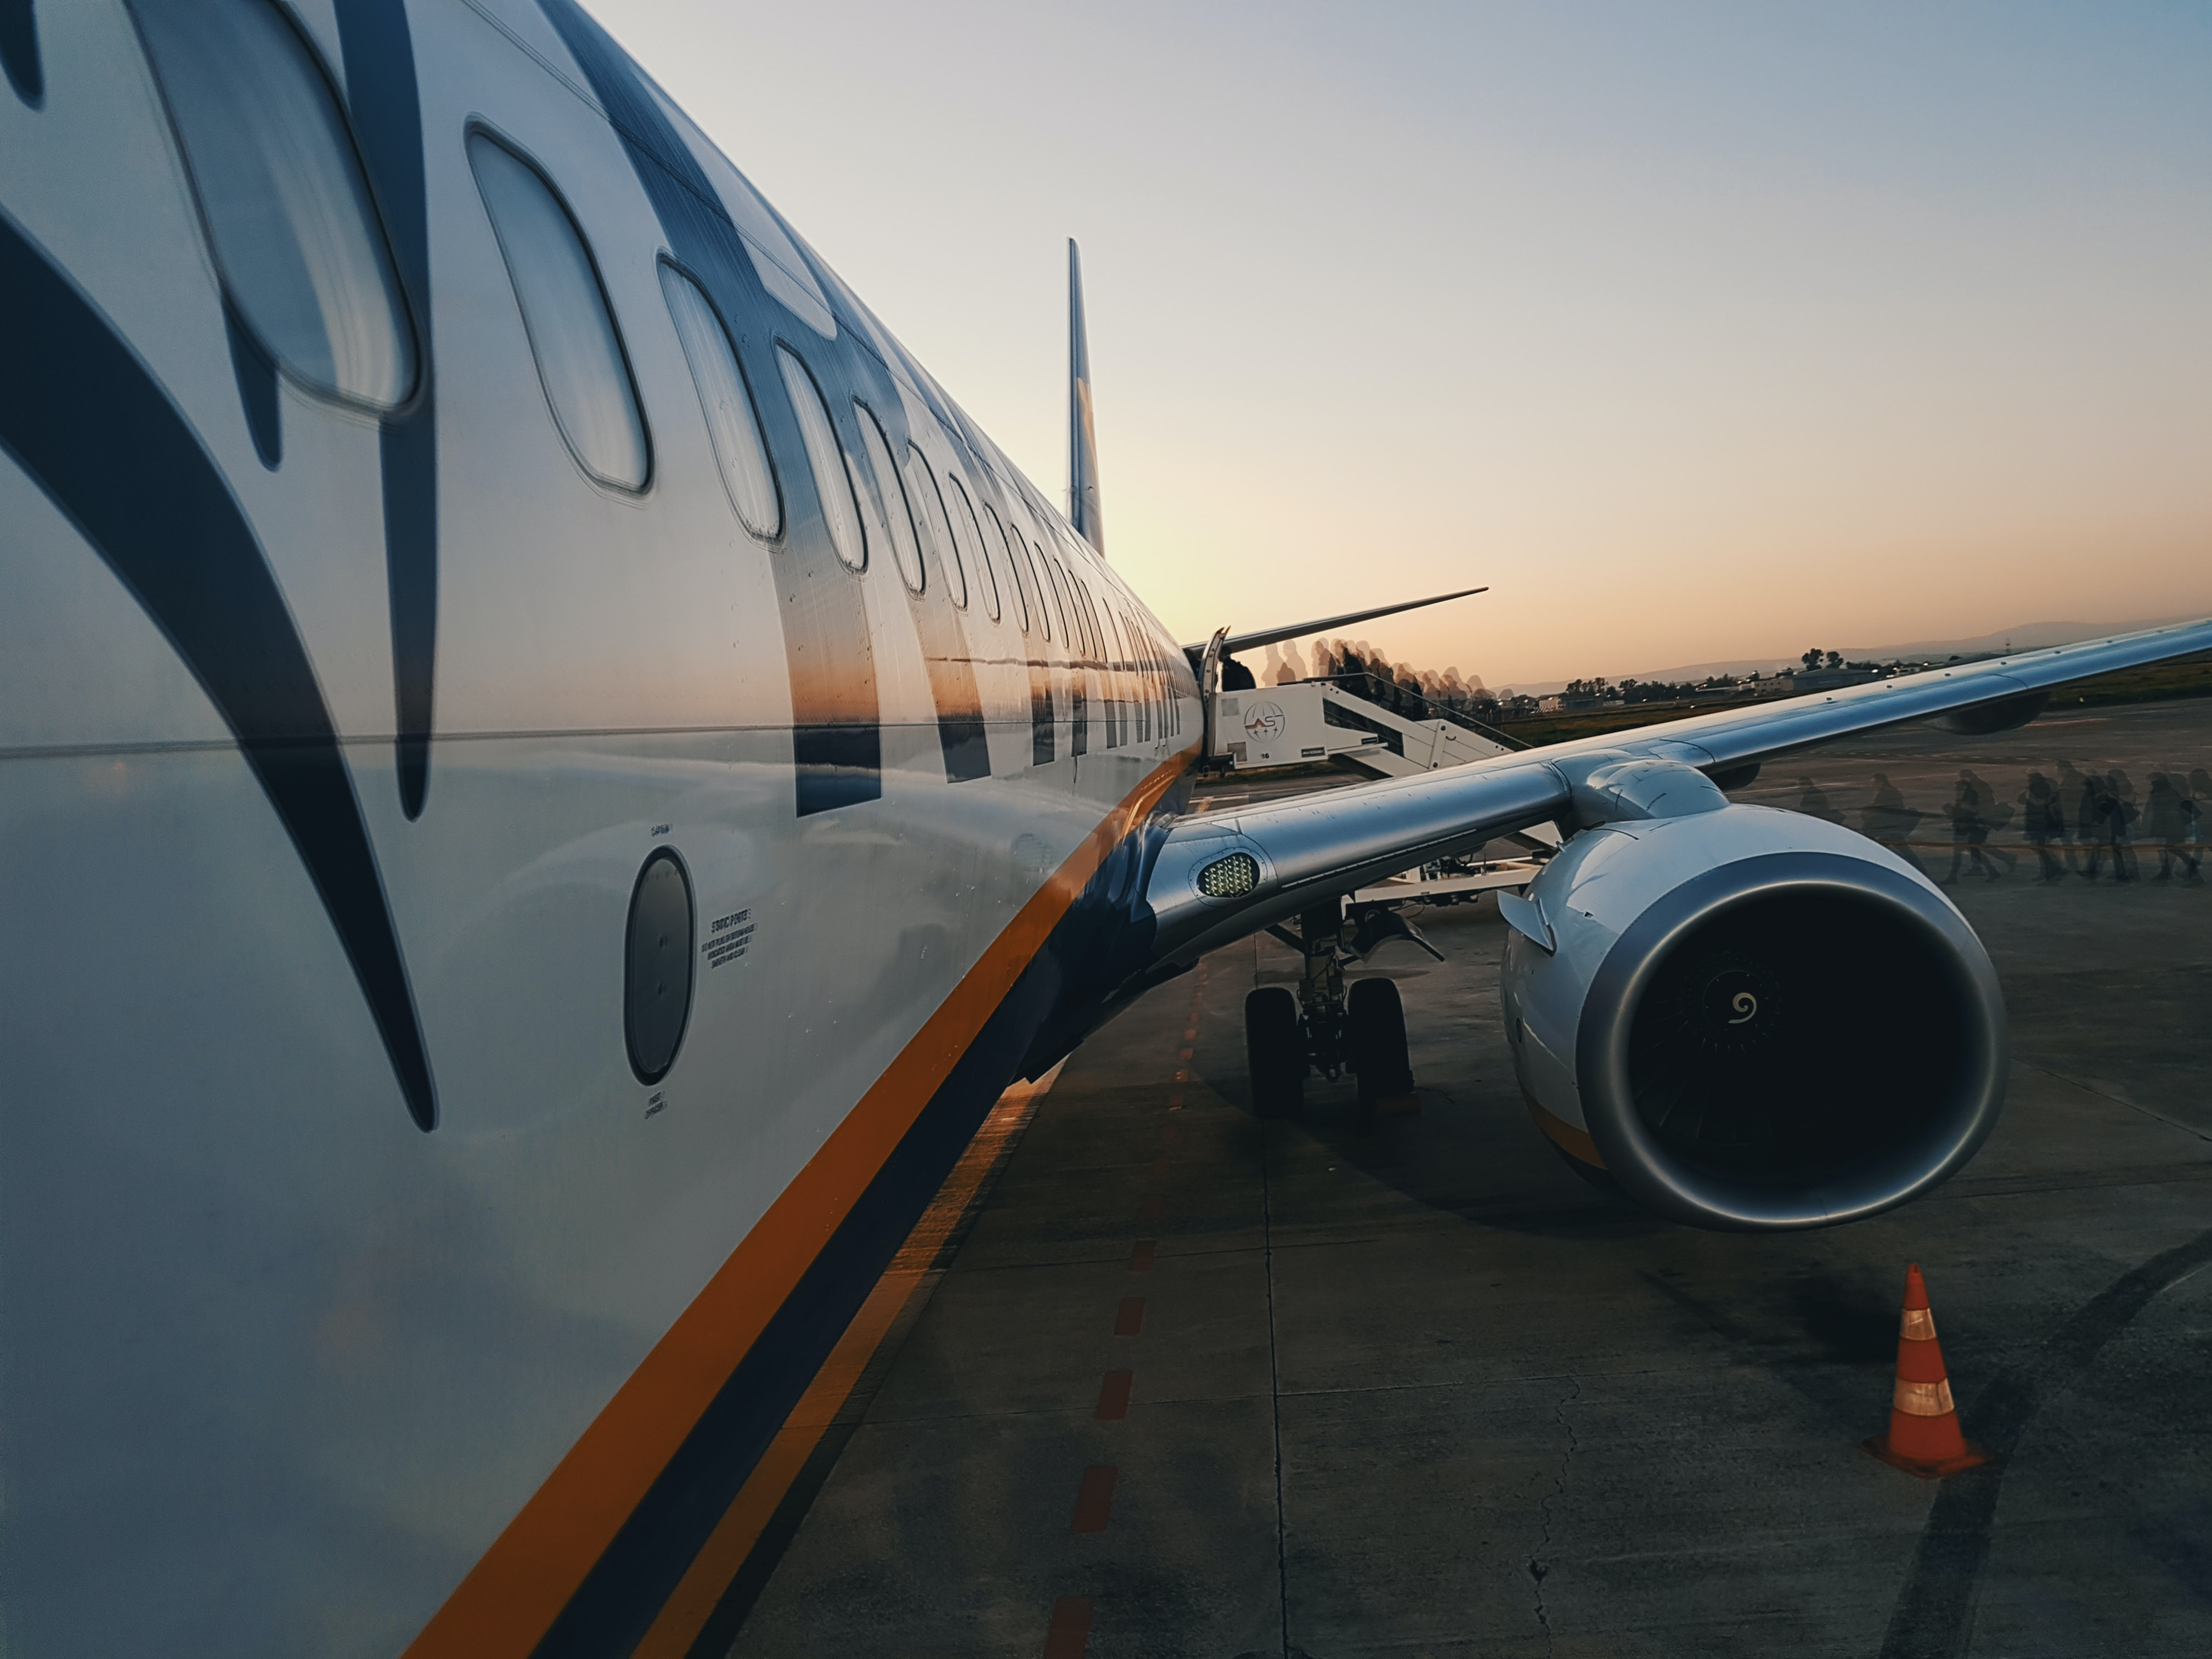 close up photography of airplane